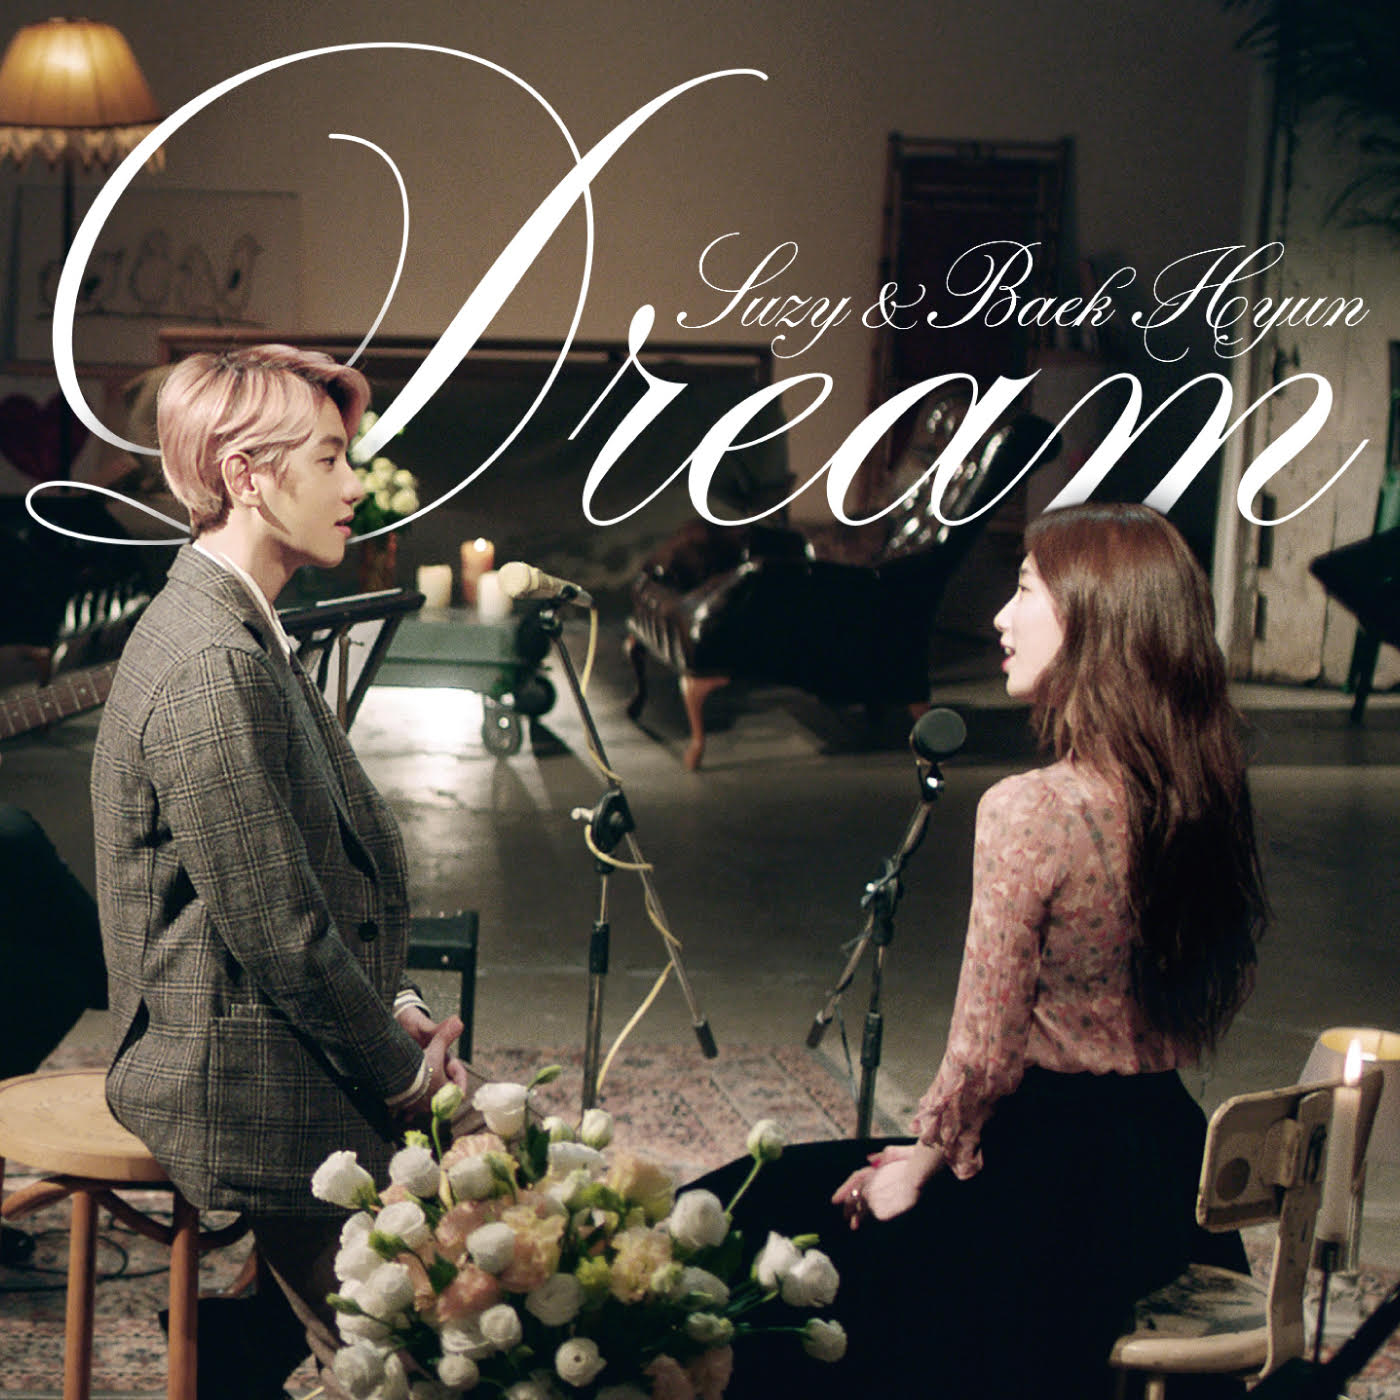 "Suzy and Baekhyun's Duet ""Dream"" Going Strong by Topping 5 Gaon Charts"